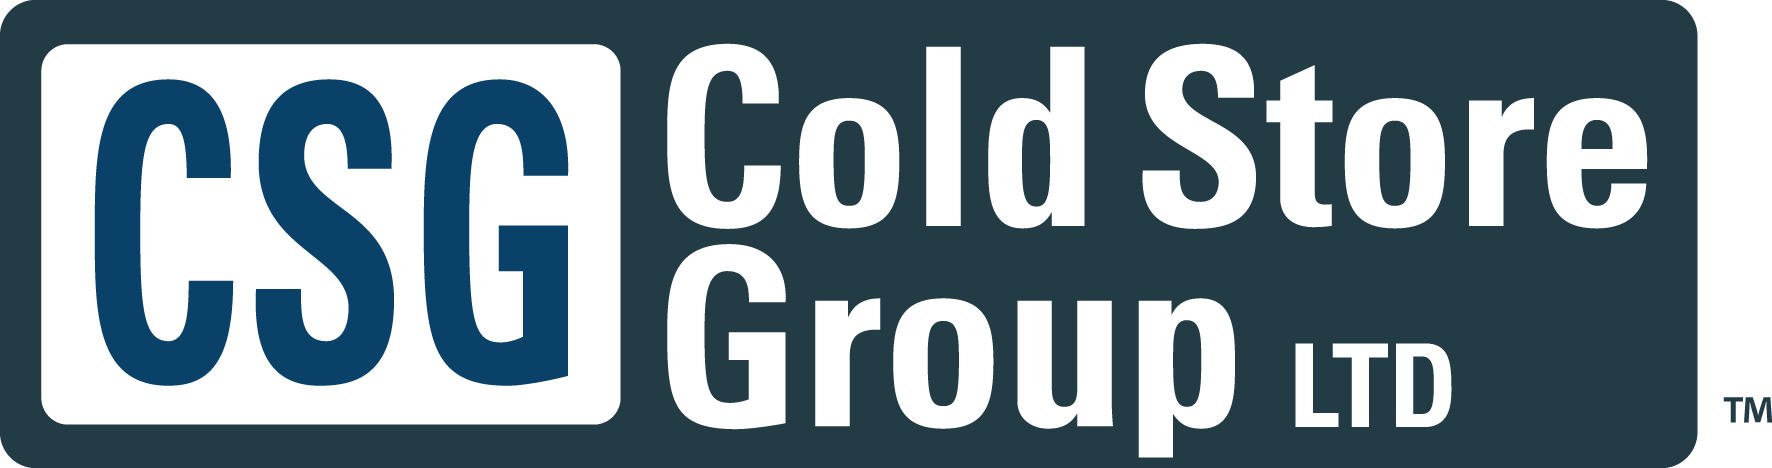 Cold Store Group